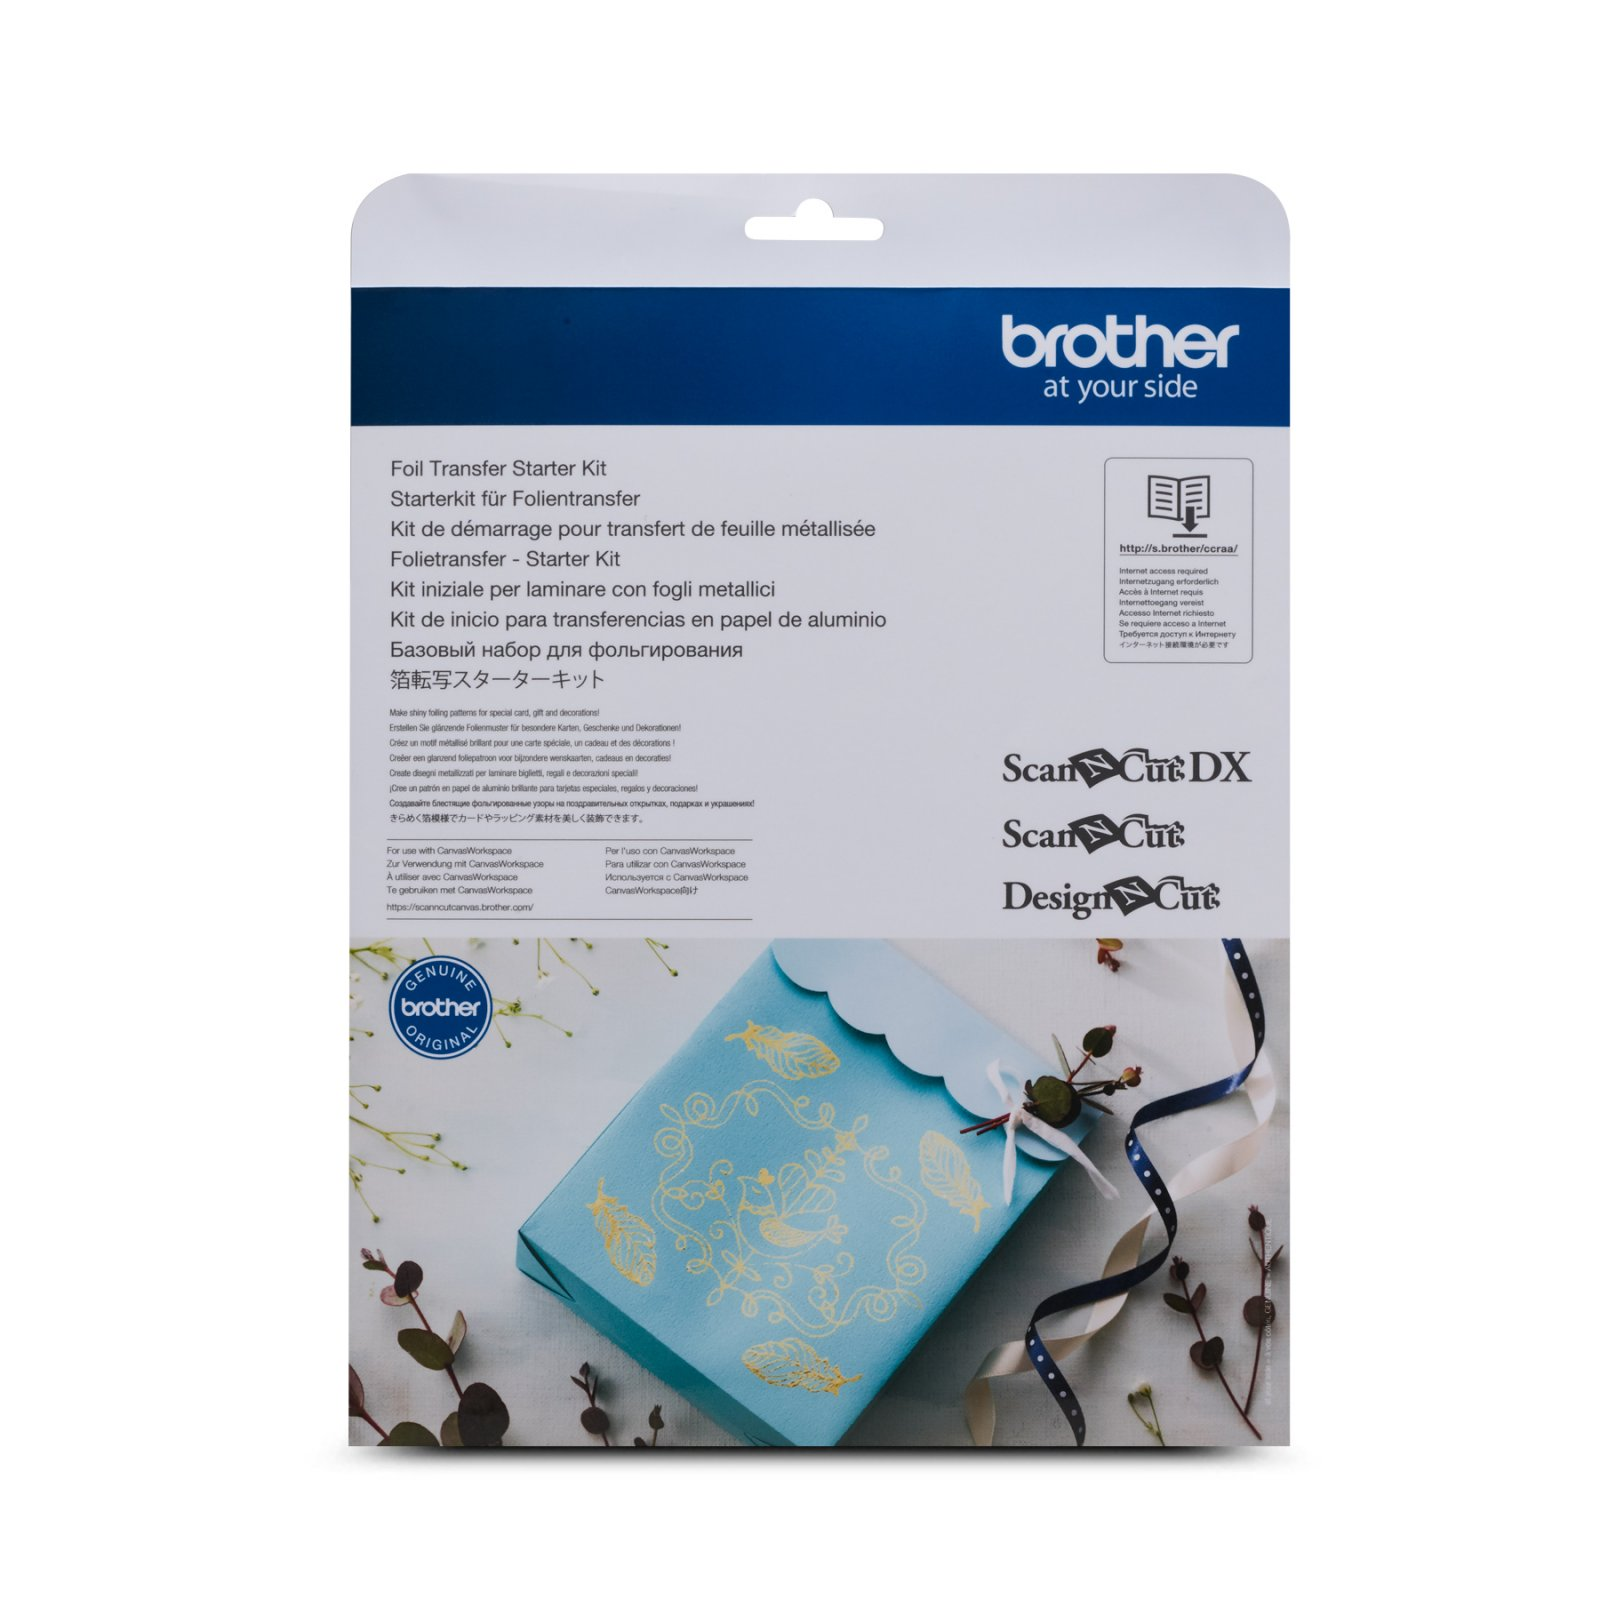 Brother CAFTKIT1 Foil Transfer Starter Kit